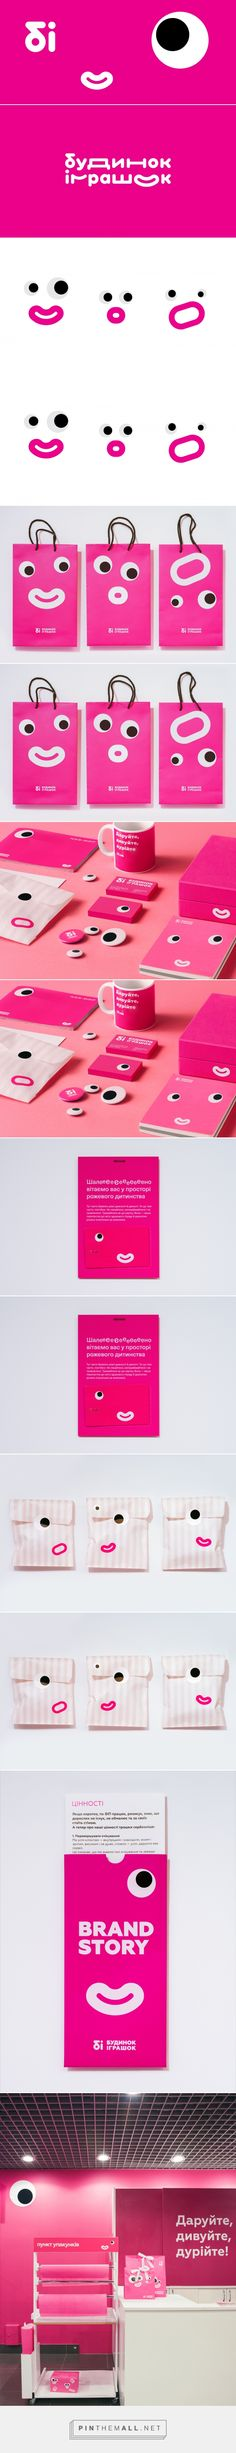 Present, Surprise, Have Fun! – FEDORIV... - a grouped images picture - Pin Them All